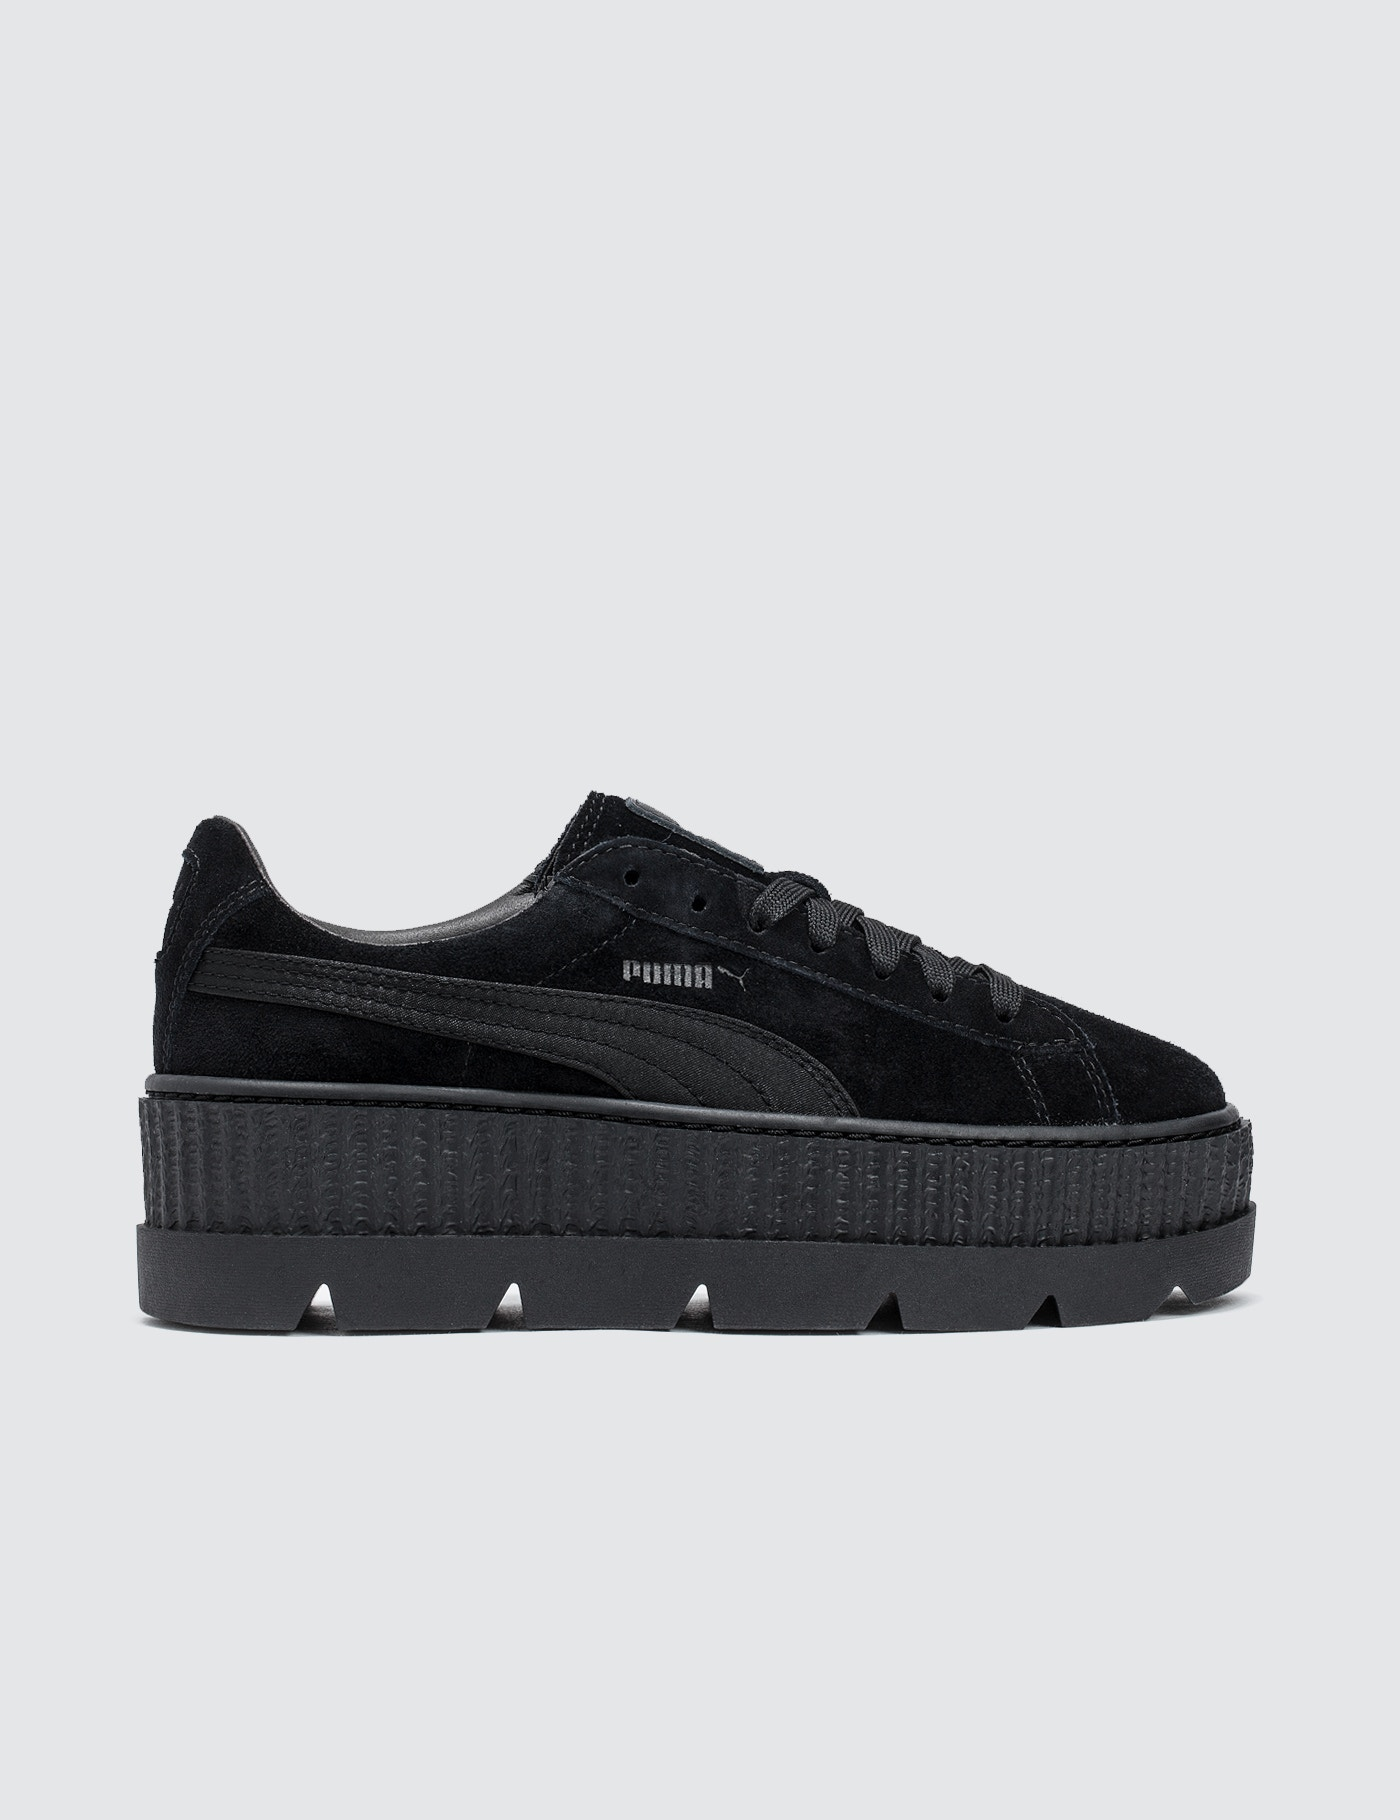 buy popular 9b62a 1aab4 Fenty By Rihanna Cleated Creeper Suede, Puma